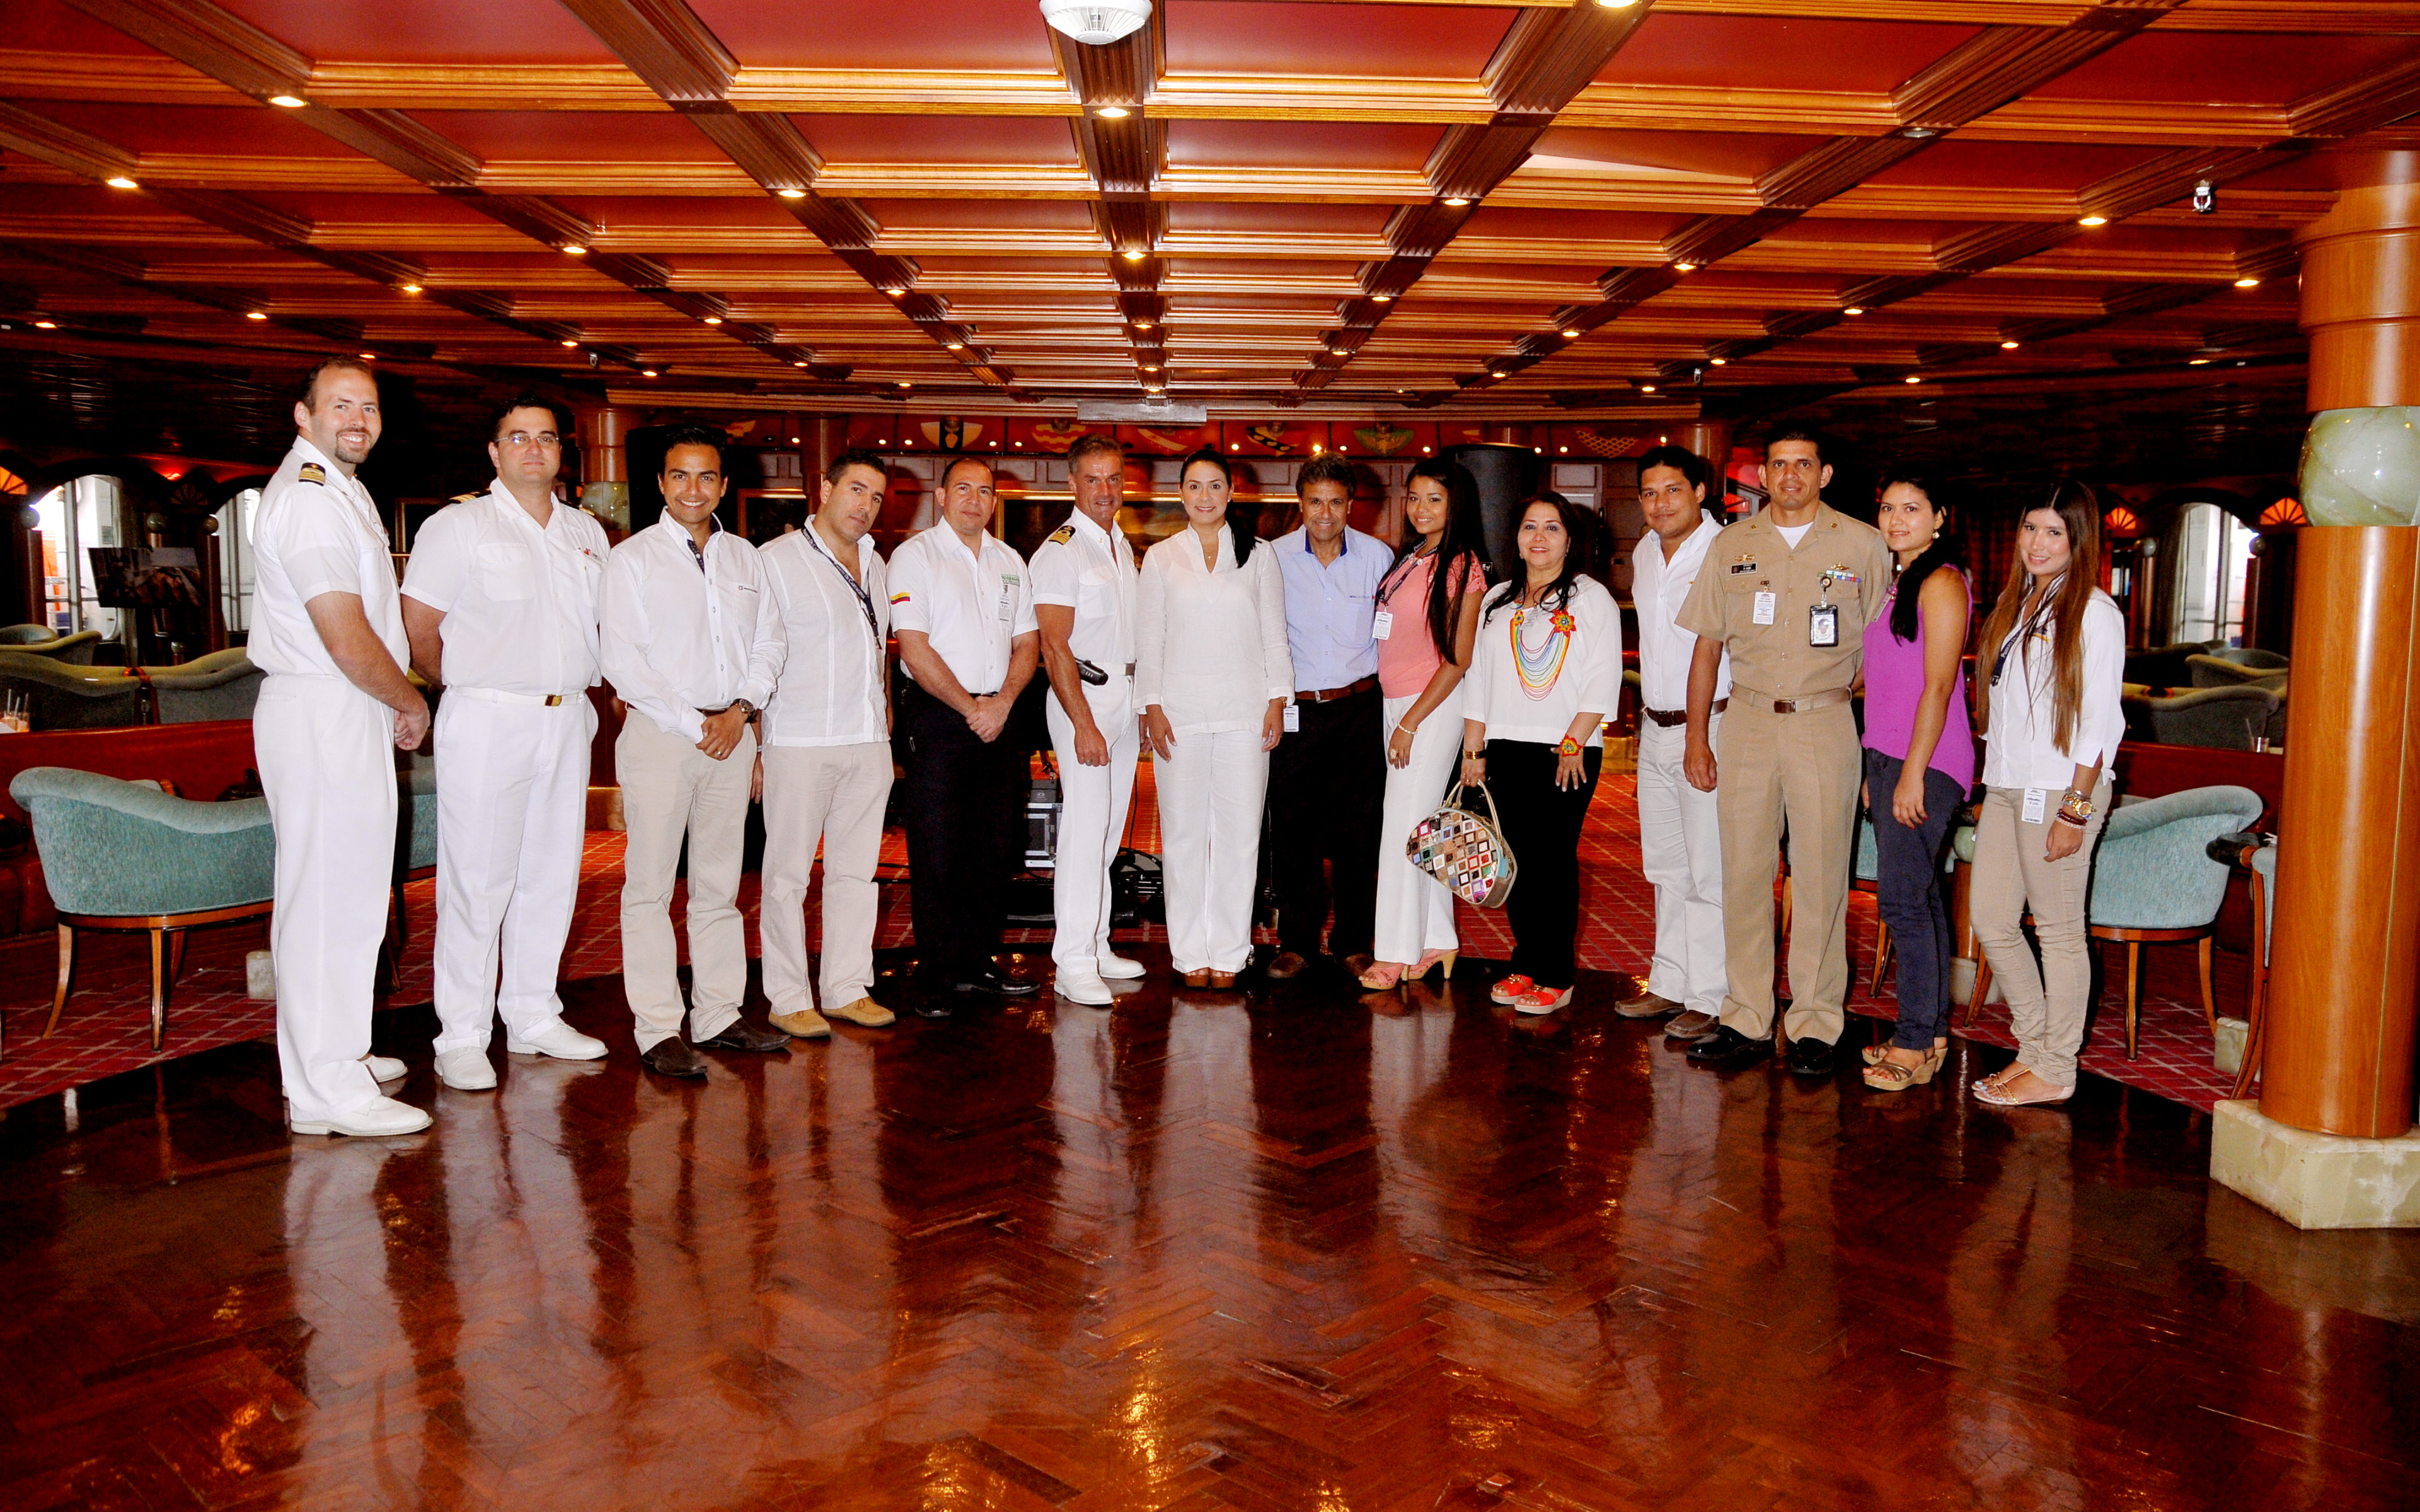 Carnival Triumph's Inaugural Call at Cartagena Marked with Traditional Maritime Plaque Exchange